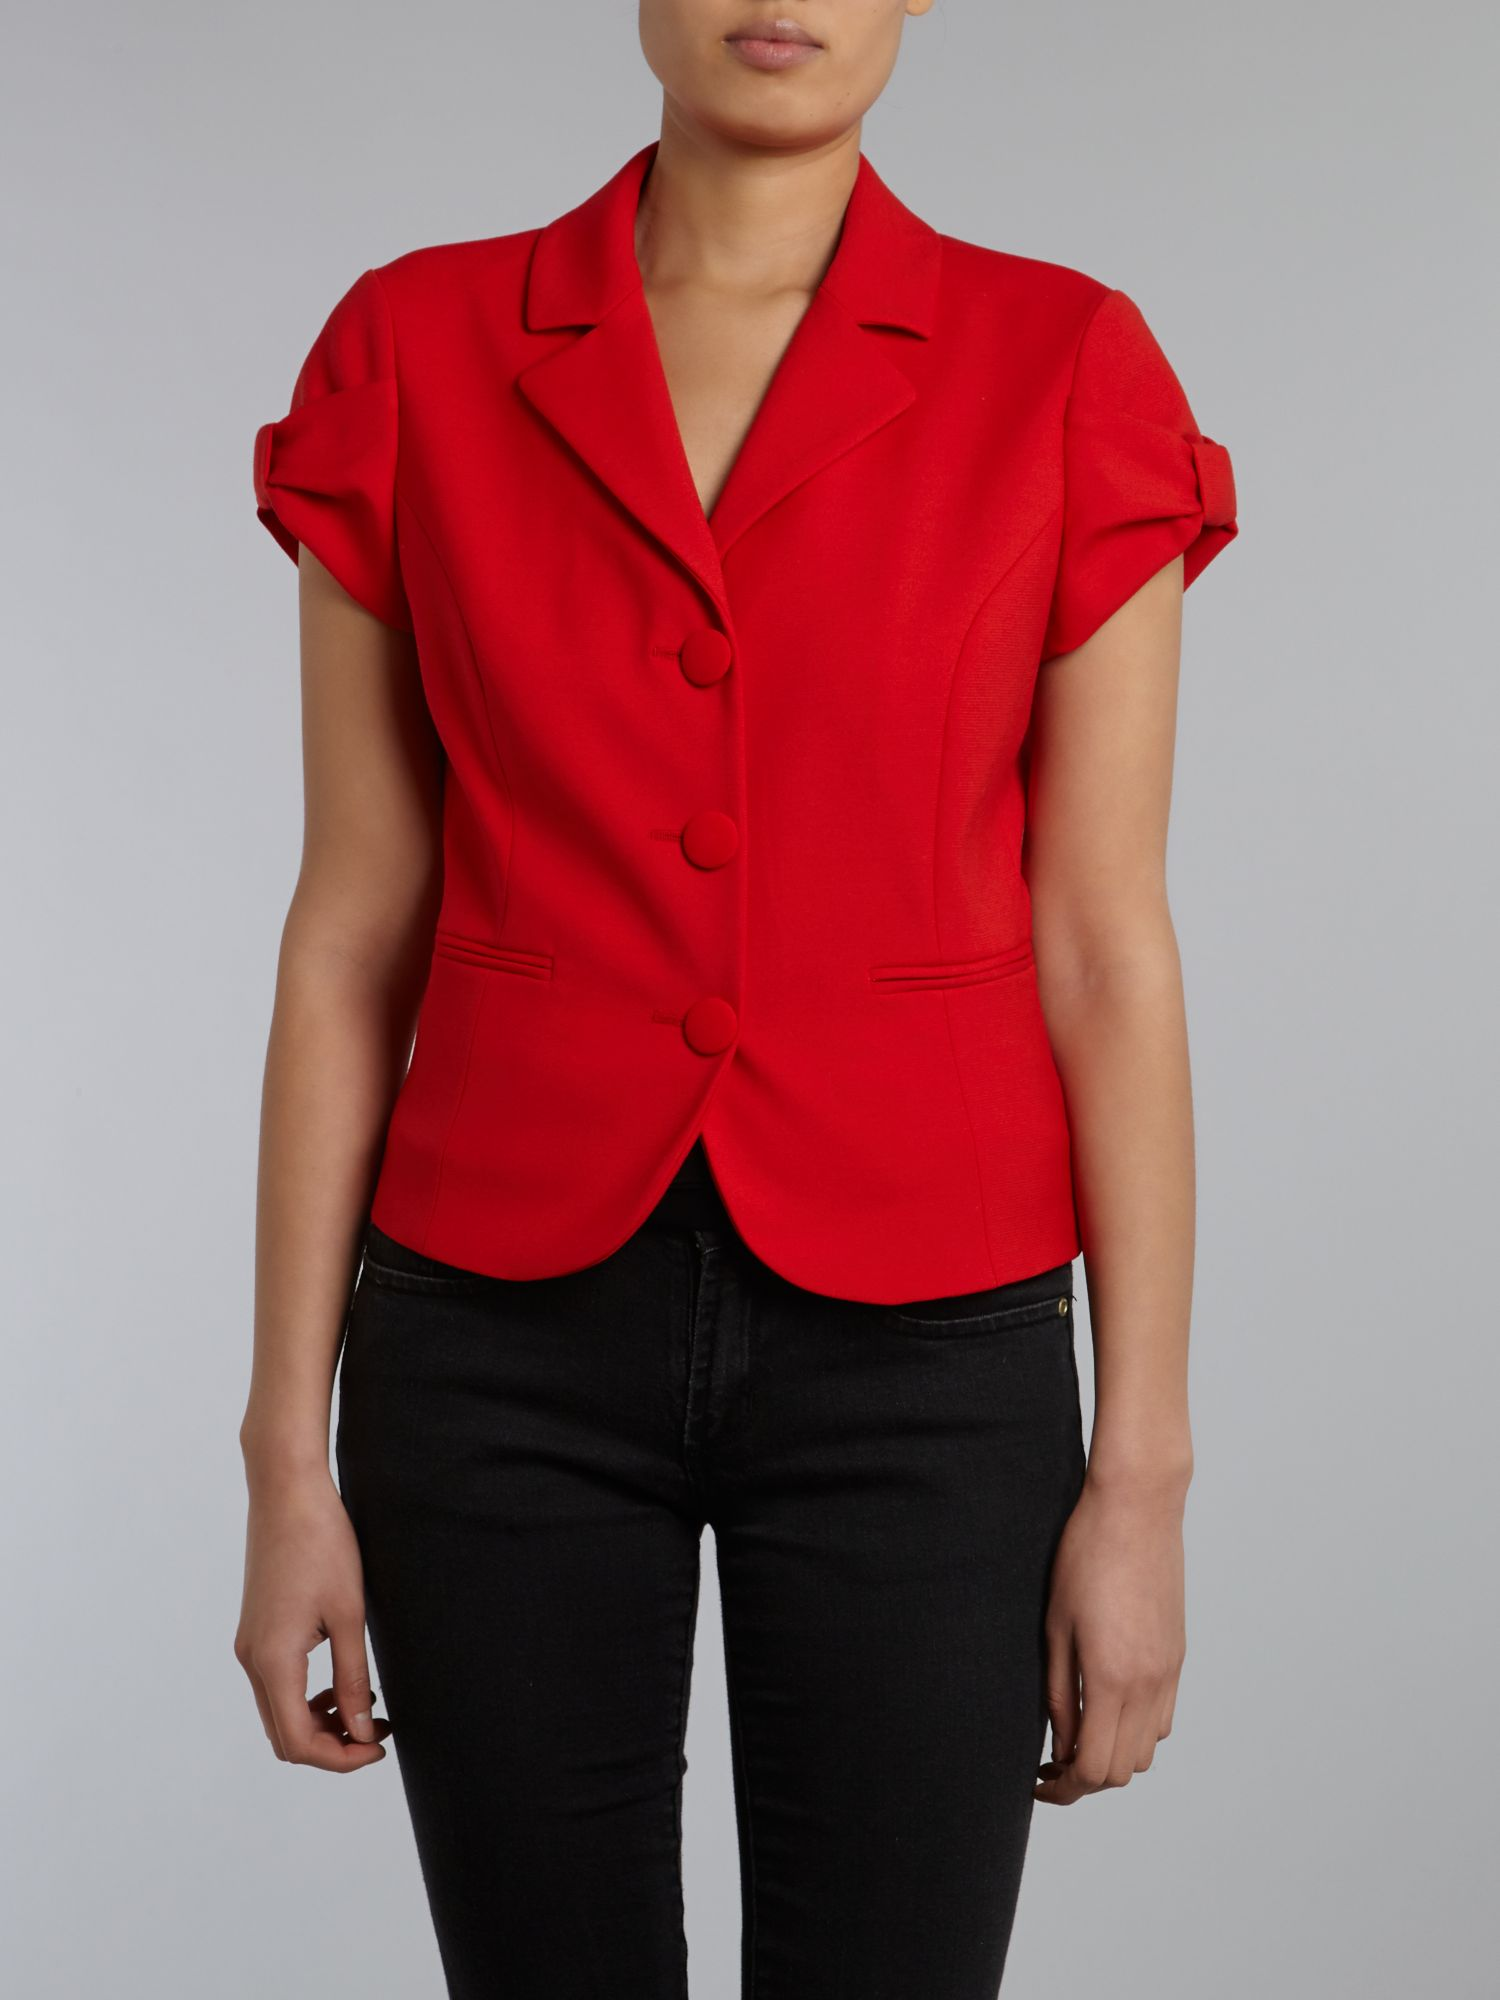 Cropped short sleeved jacket with bow detail